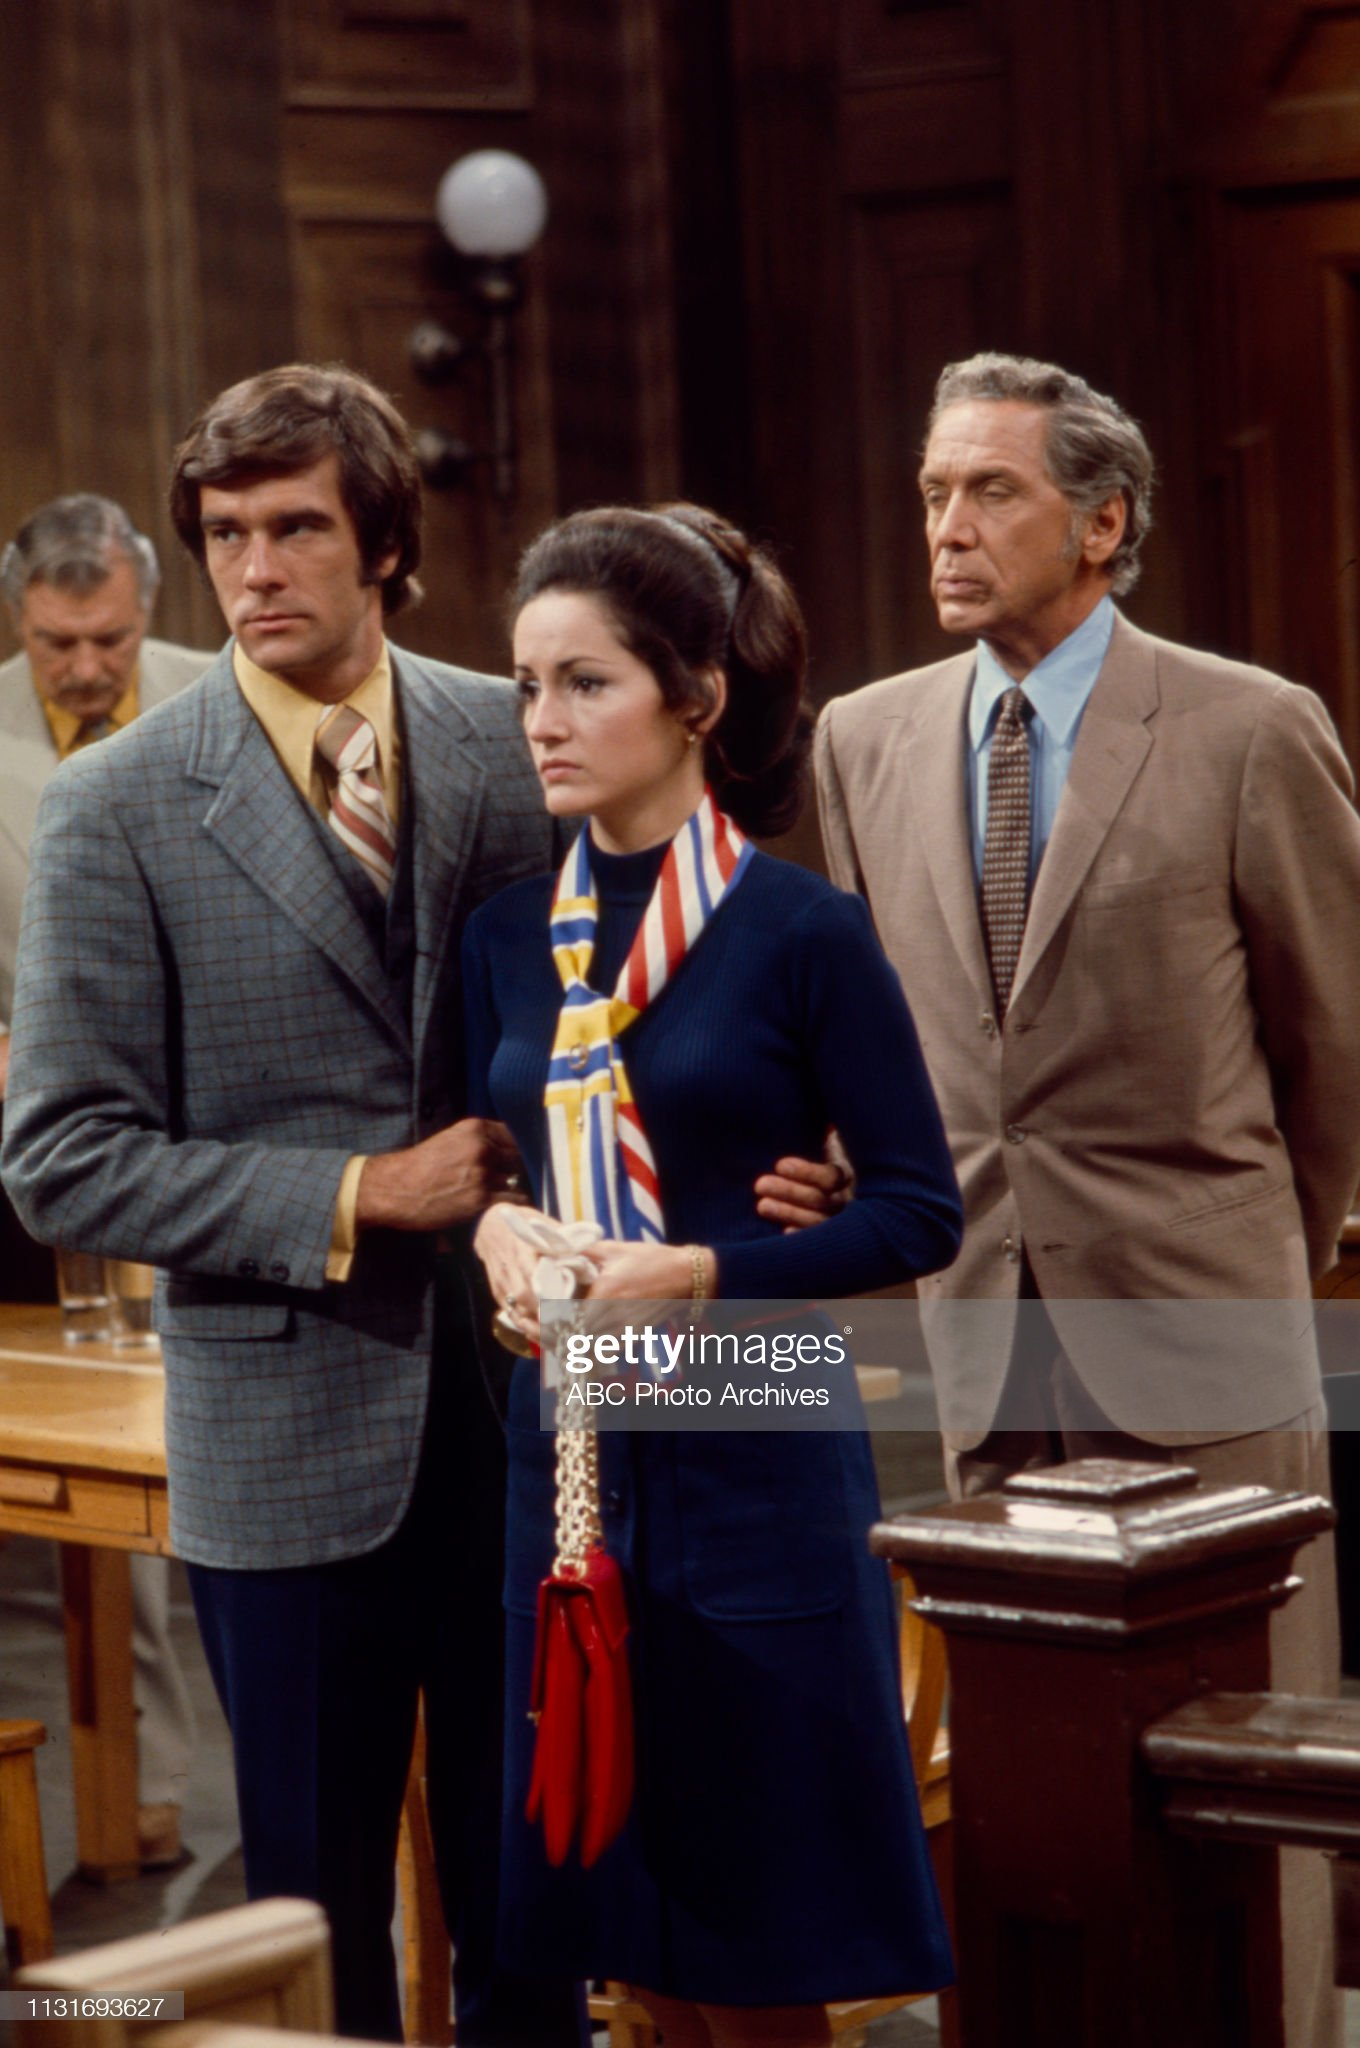 James Craig, Tom Hallick, Robin Strasser, John Conte Appearing In 'The ABC Afternoon Playbreak' : News Photo